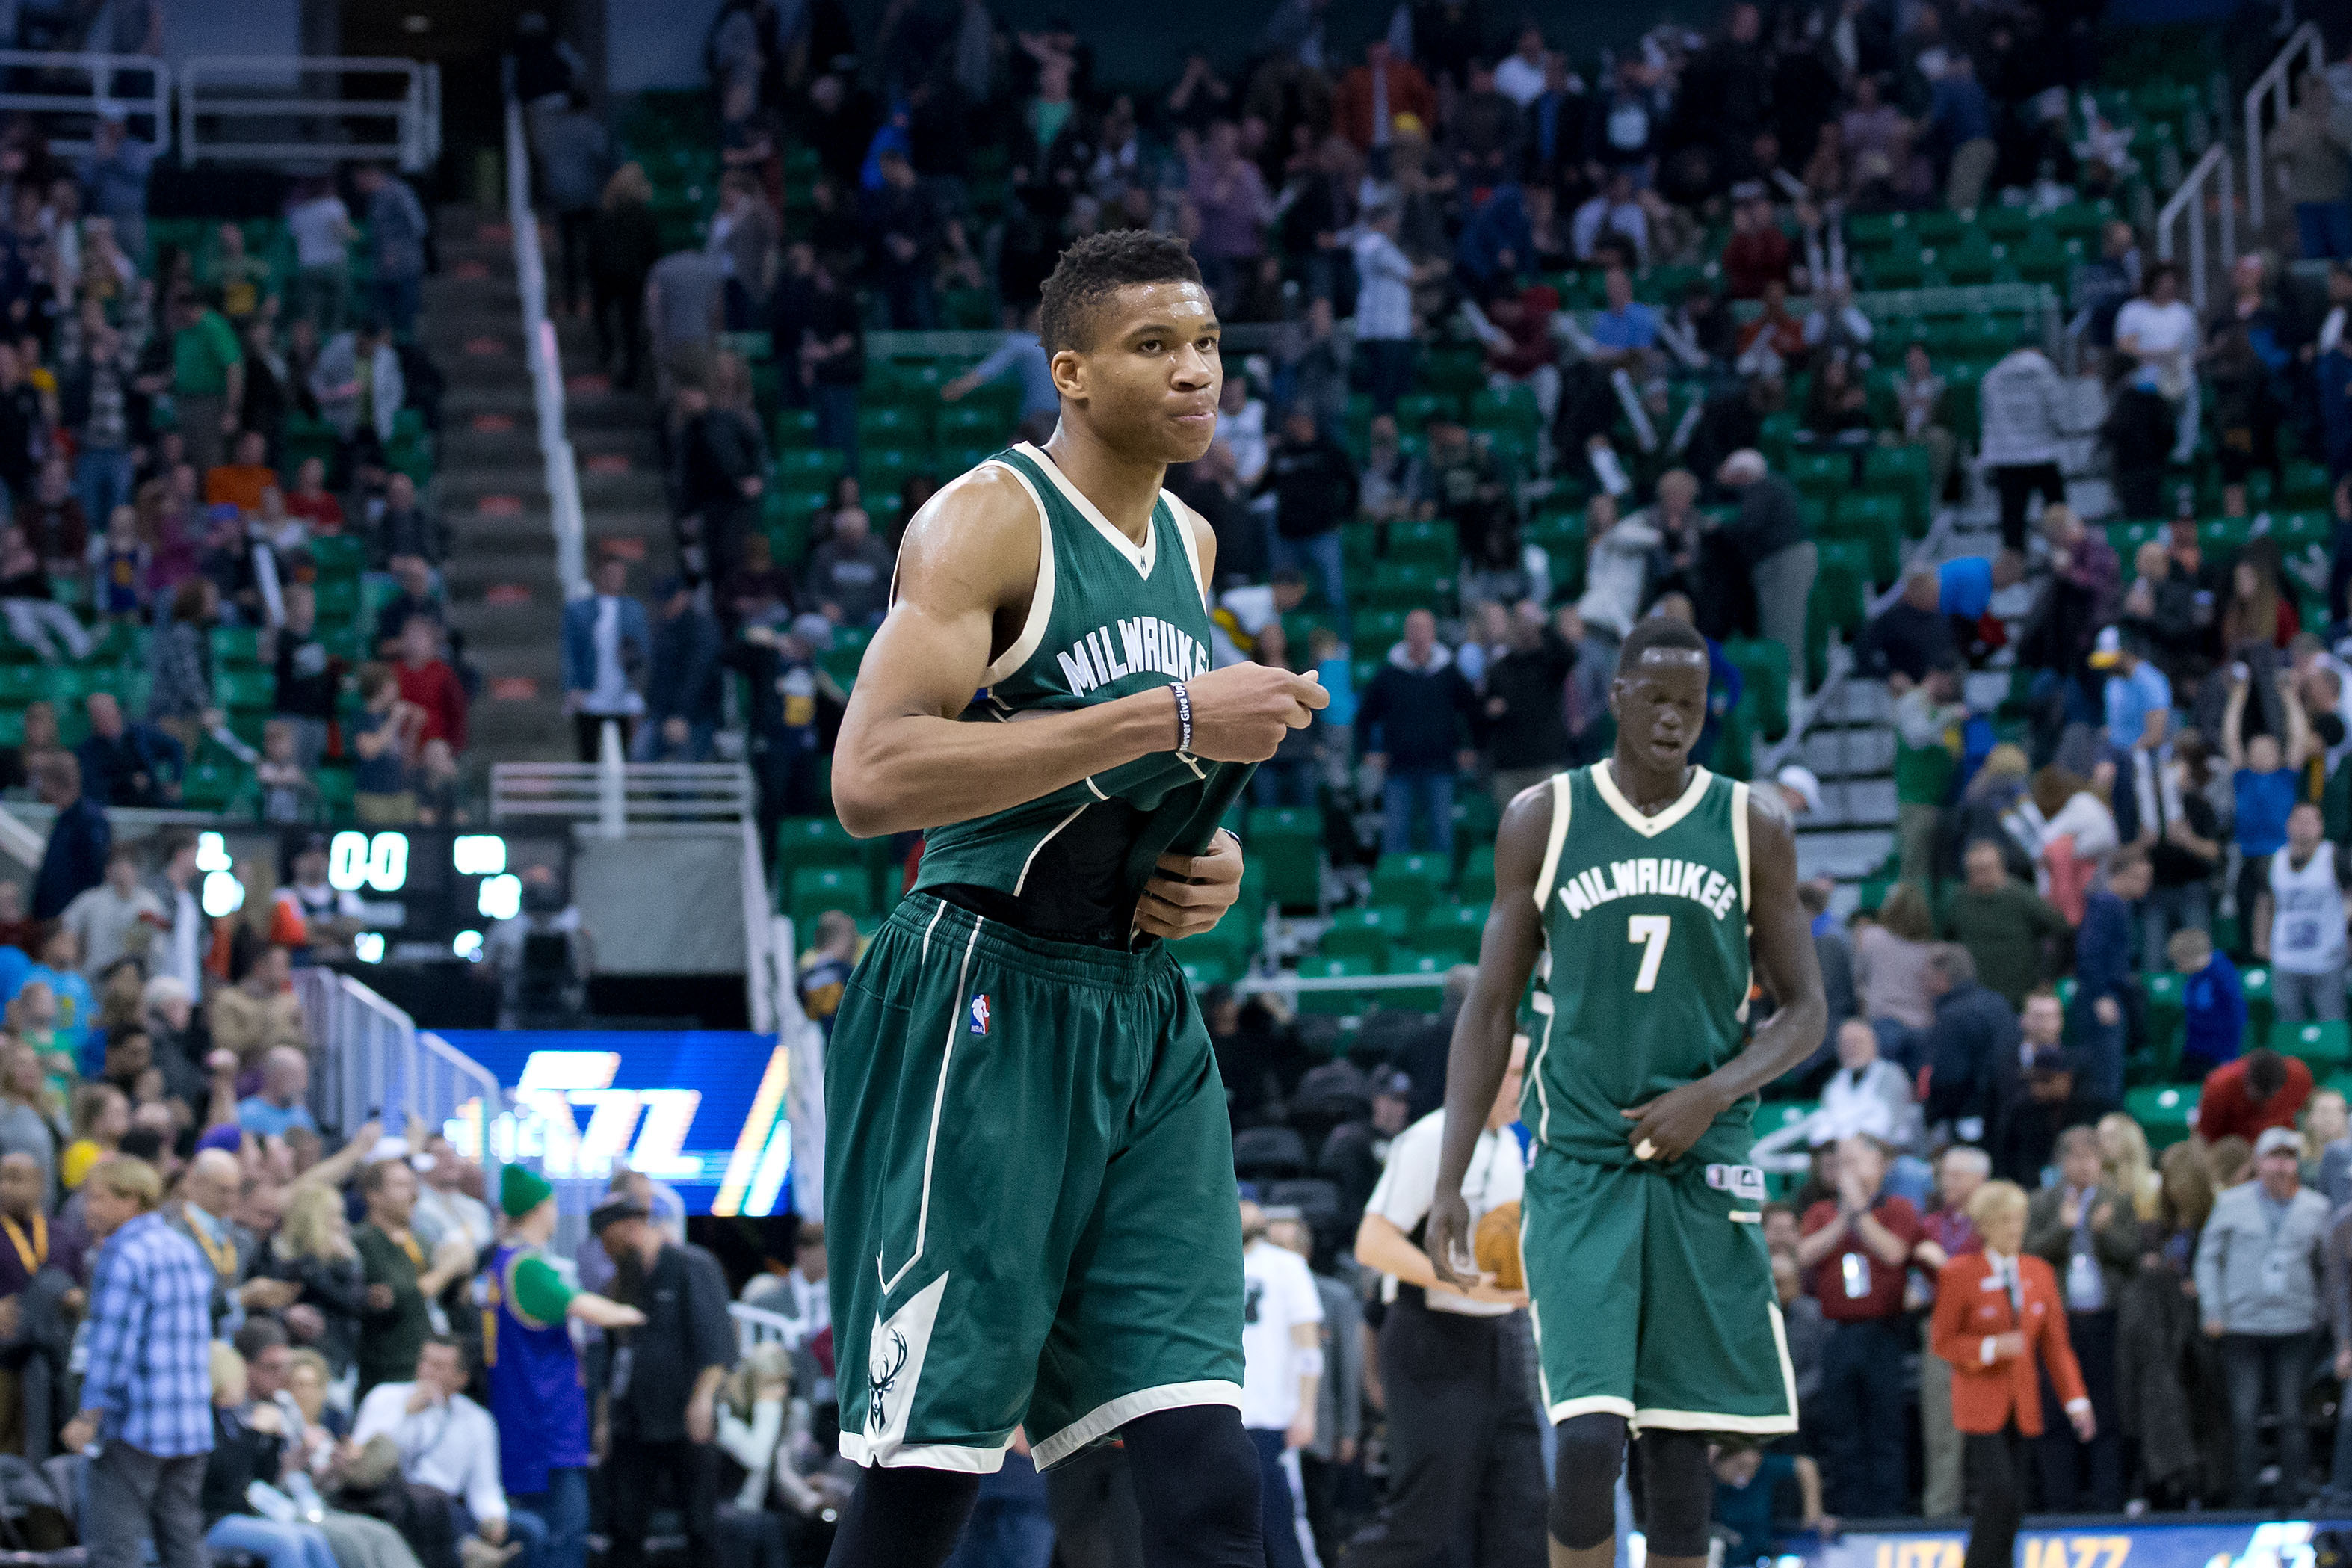 Feb 1, 2017; Salt Lake City, UT, USA; Milwaukee Bucks forward Giannis Antetokounmpo (34) leaves the court following the game against the Utah Jazz at Vivint Smart Home Arena. The Jazz won 104-88. Mandatory Credit: Russ Isabella-USA TODAY Sports